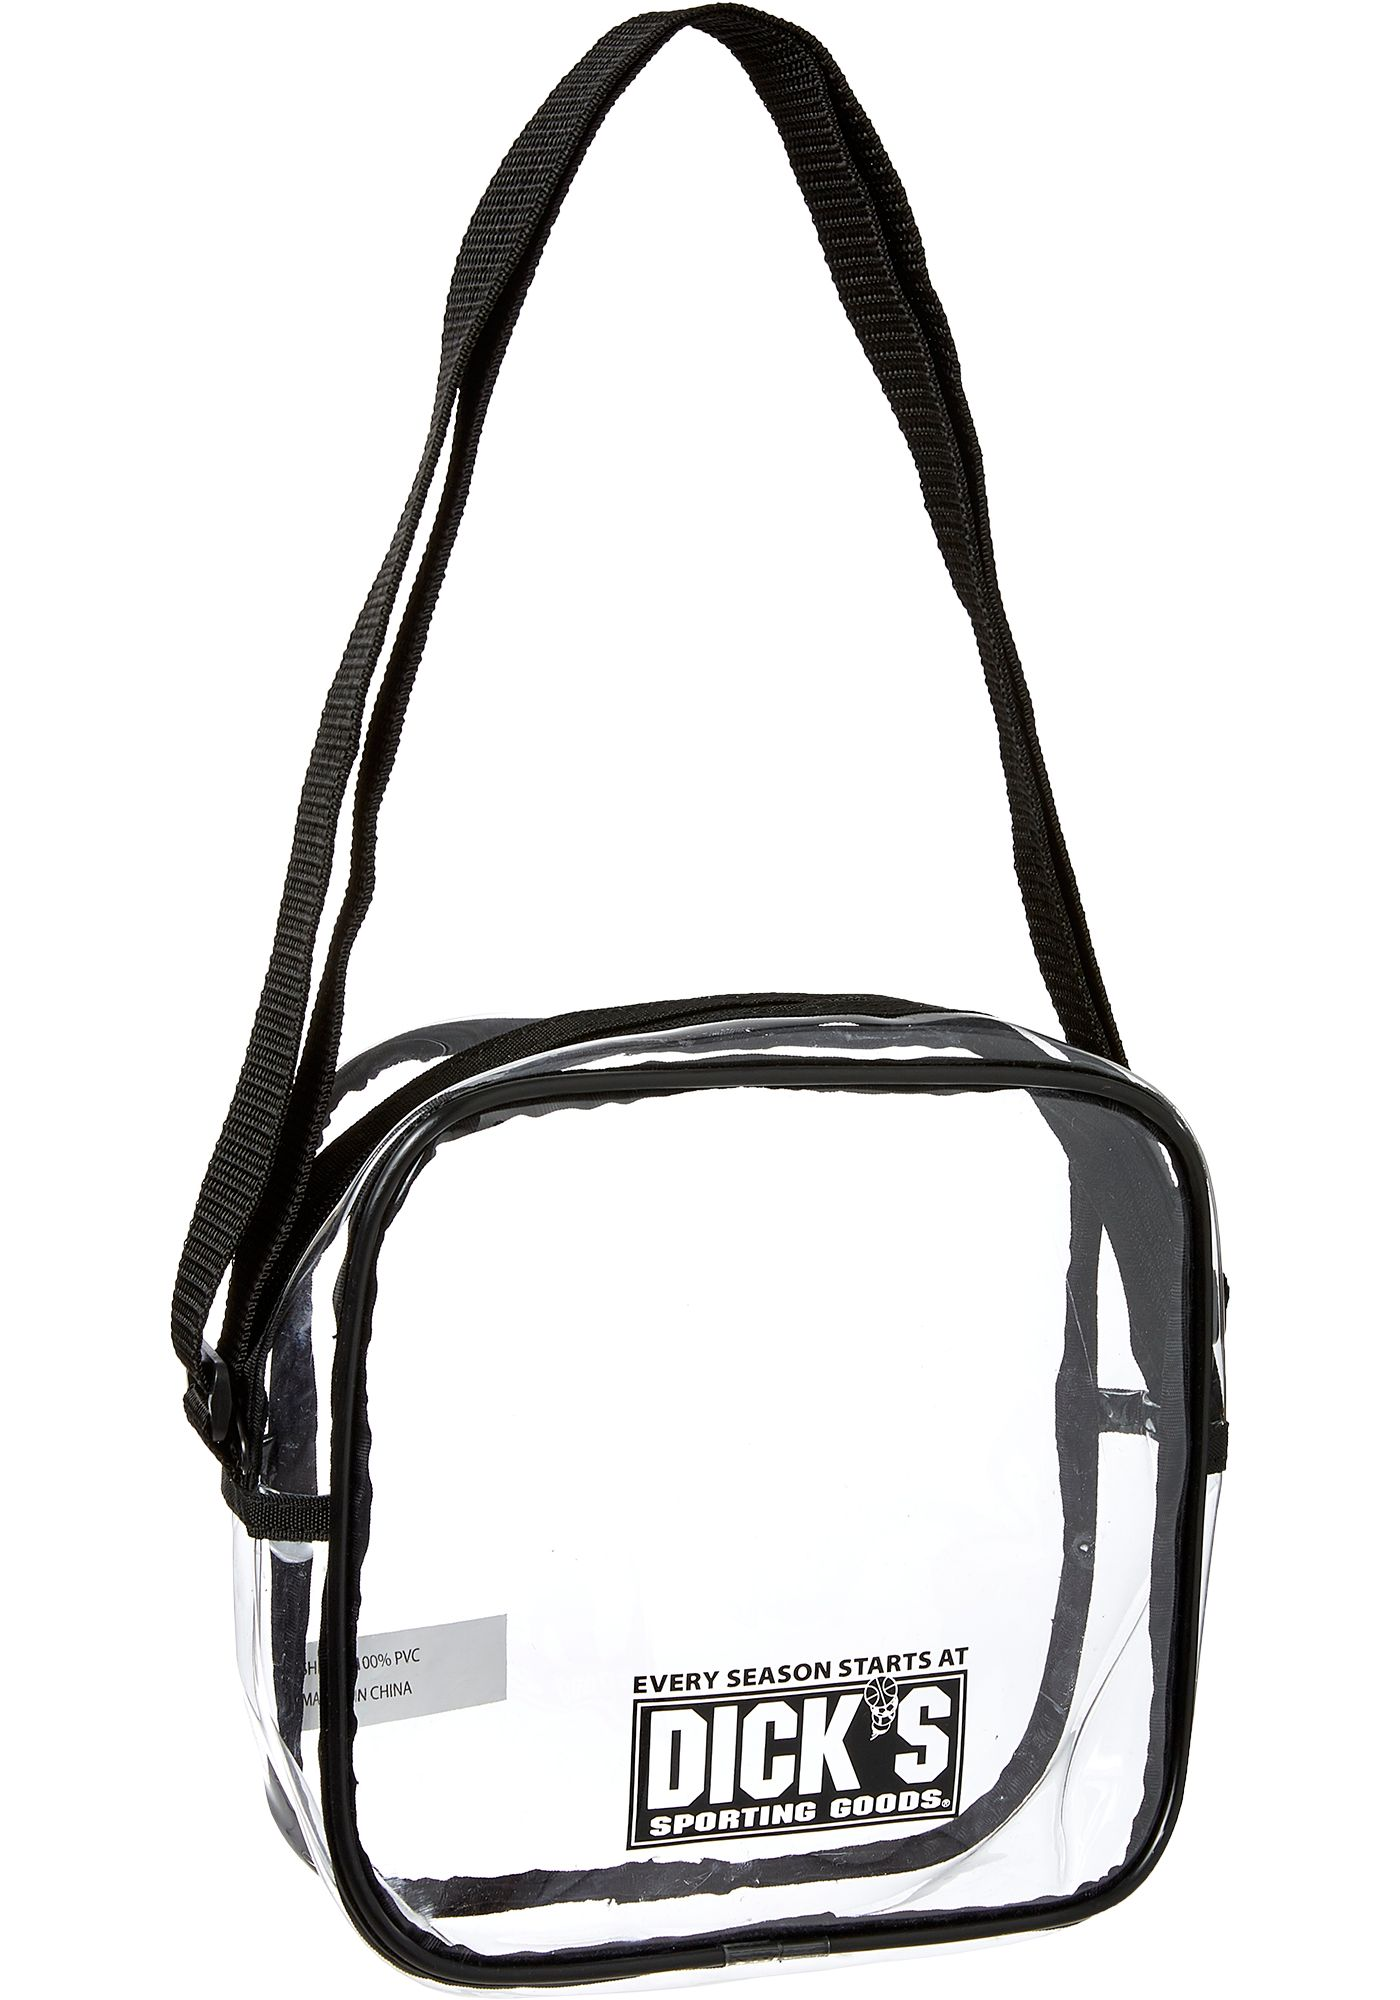 DICK'S Sporting Goods Clear Stadium Cross Body Bag